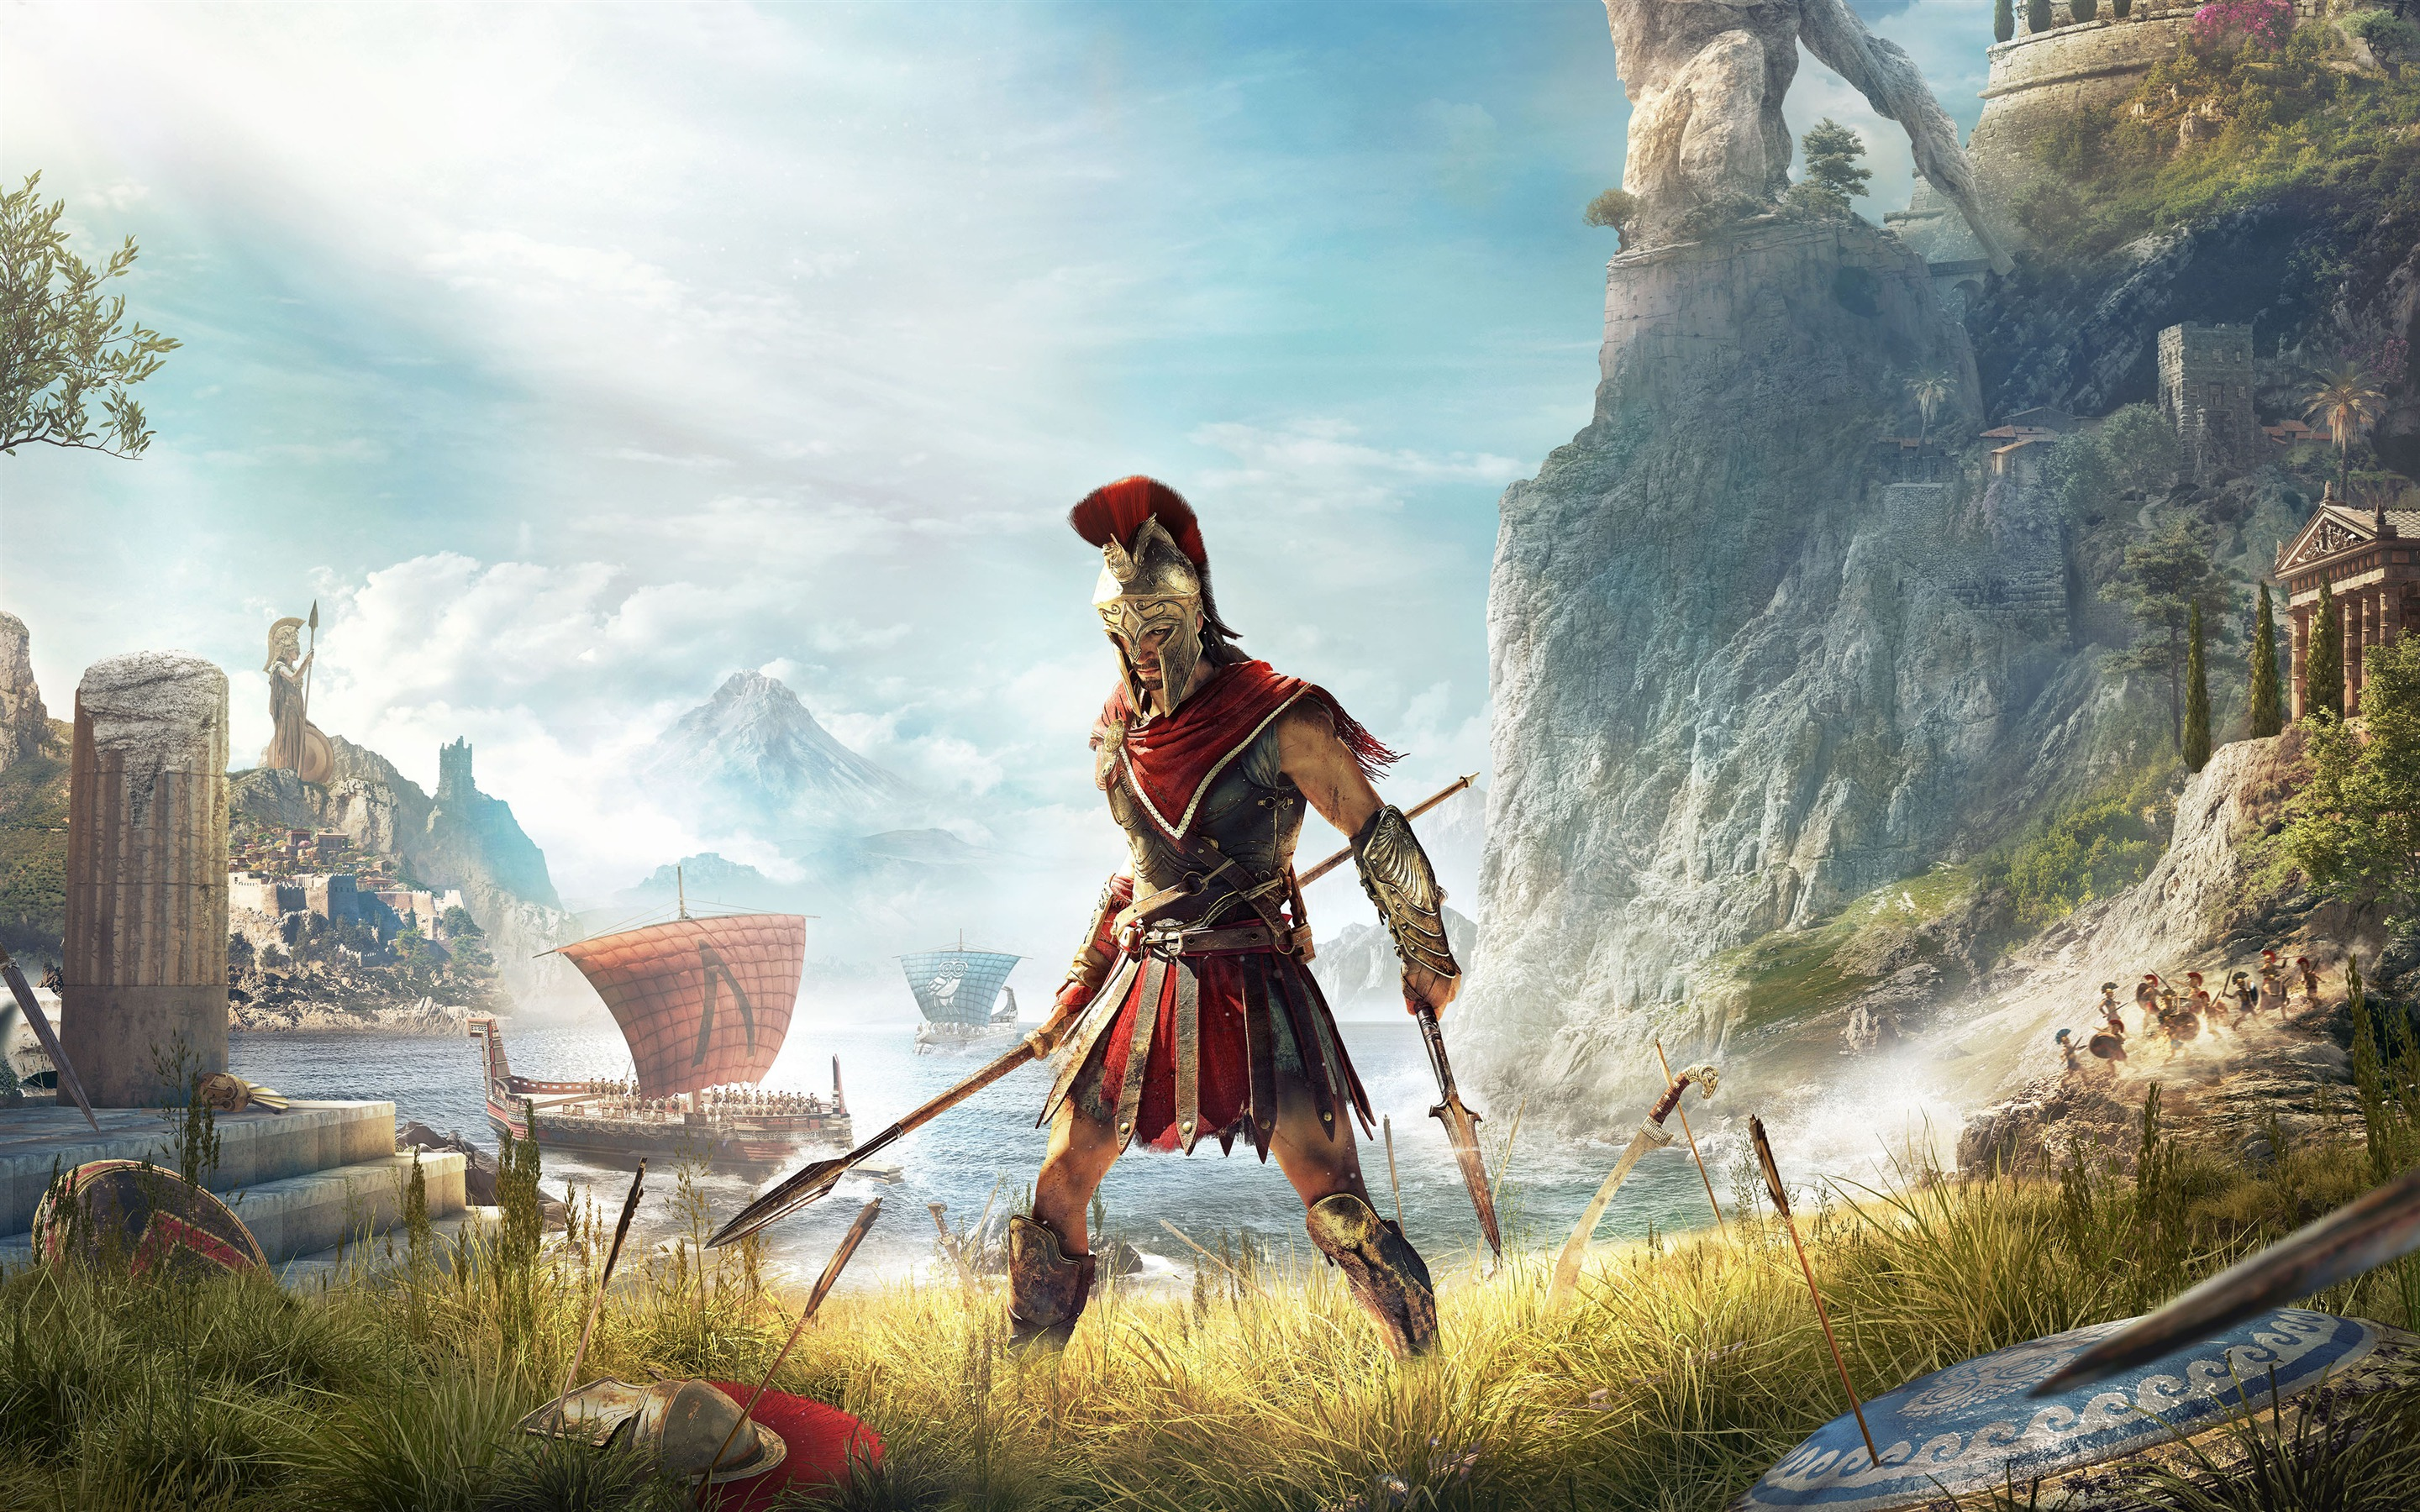 Universe Wallpaper Hd Assassins Creed Odyssey 2018 Gameplay 4k Poster Preview